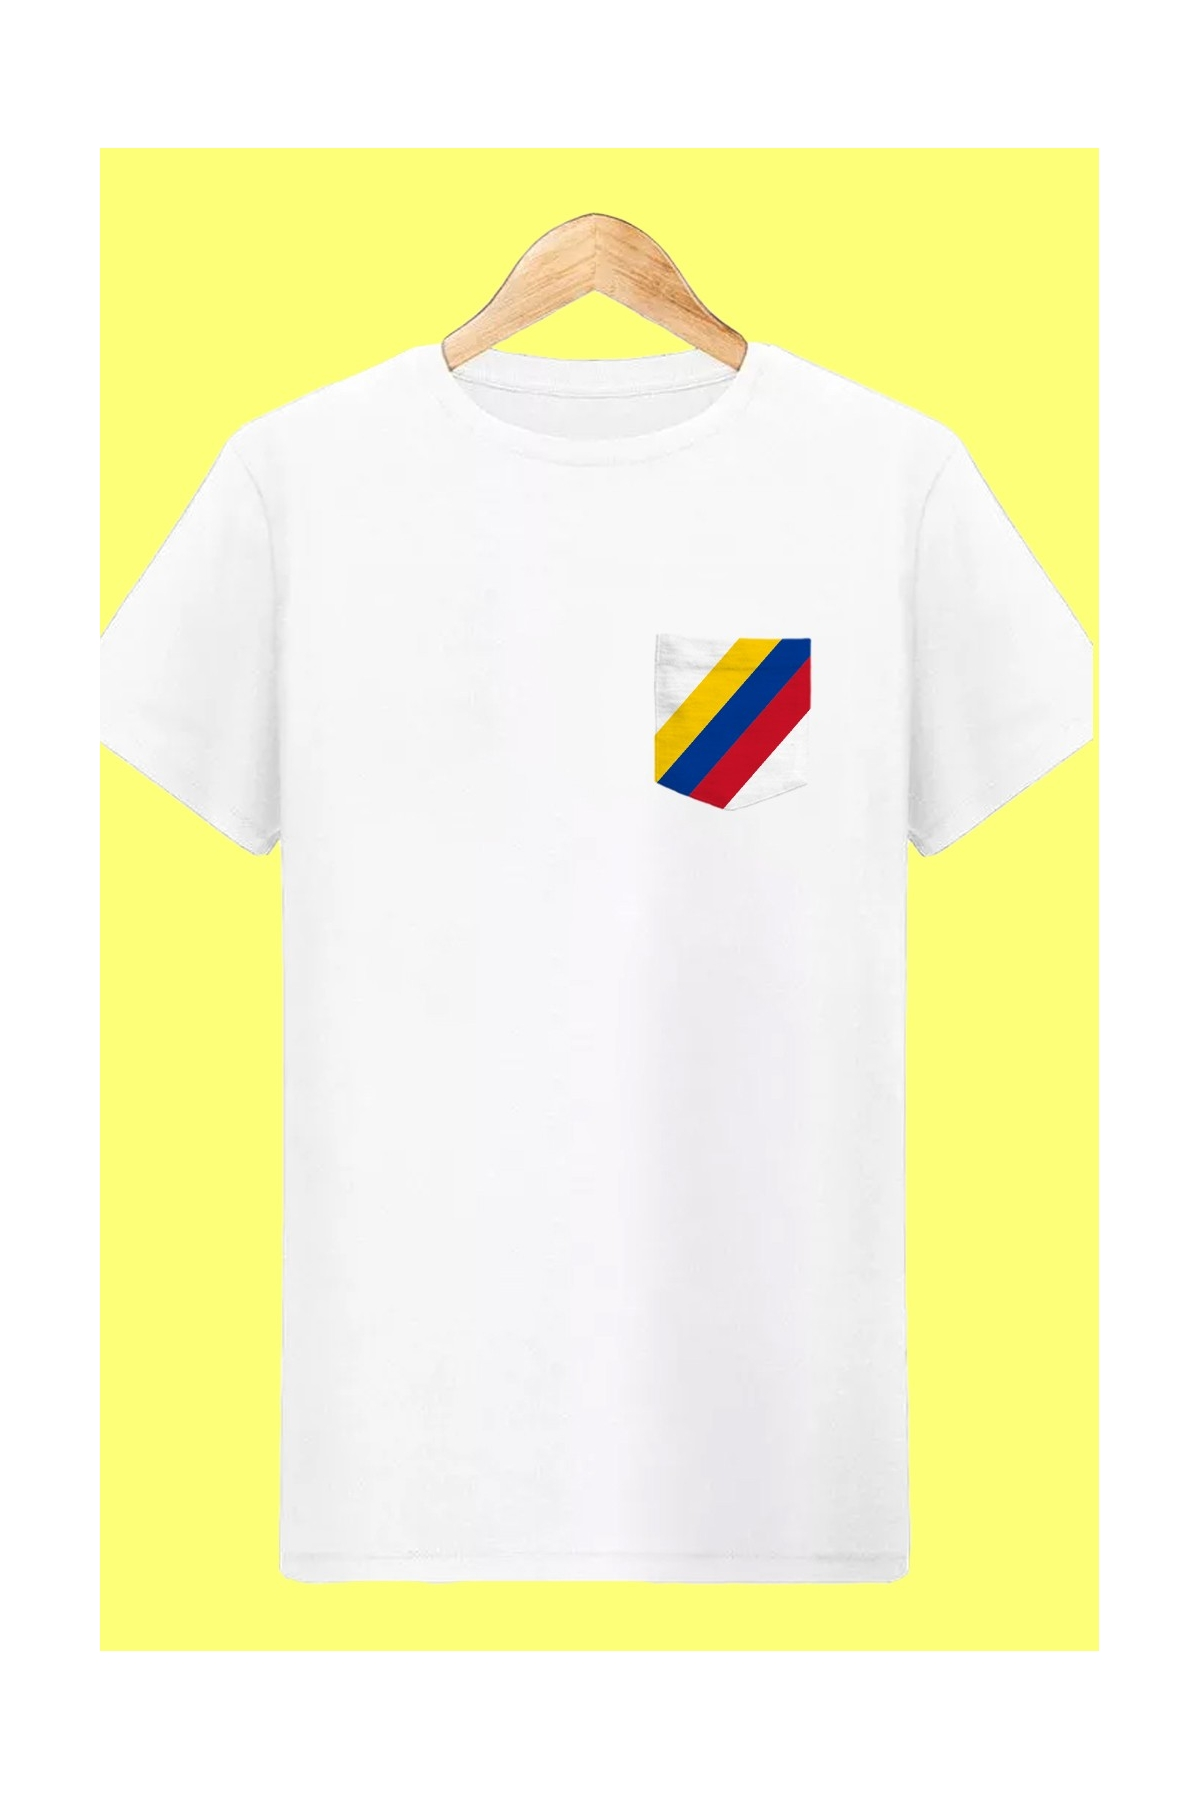 T-shirt Colombie Colombia Coupe du monde 2018 Football